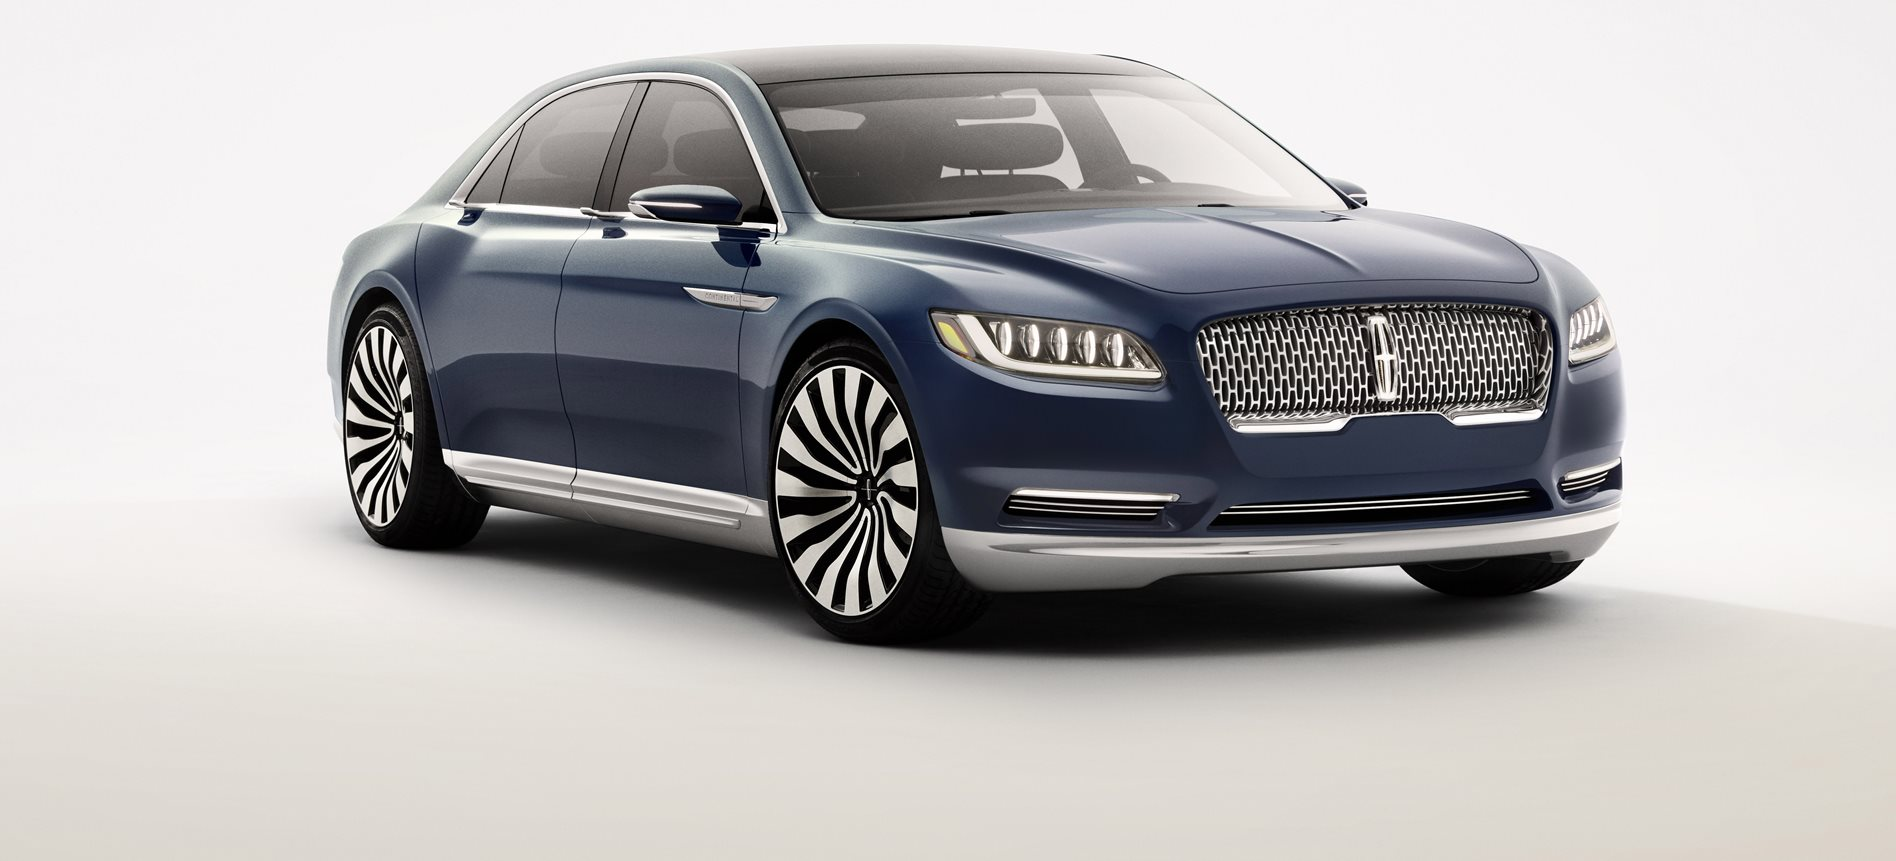 2015 new york motor show lincoln continental ruled out. Black Bedroom Furniture Sets. Home Design Ideas